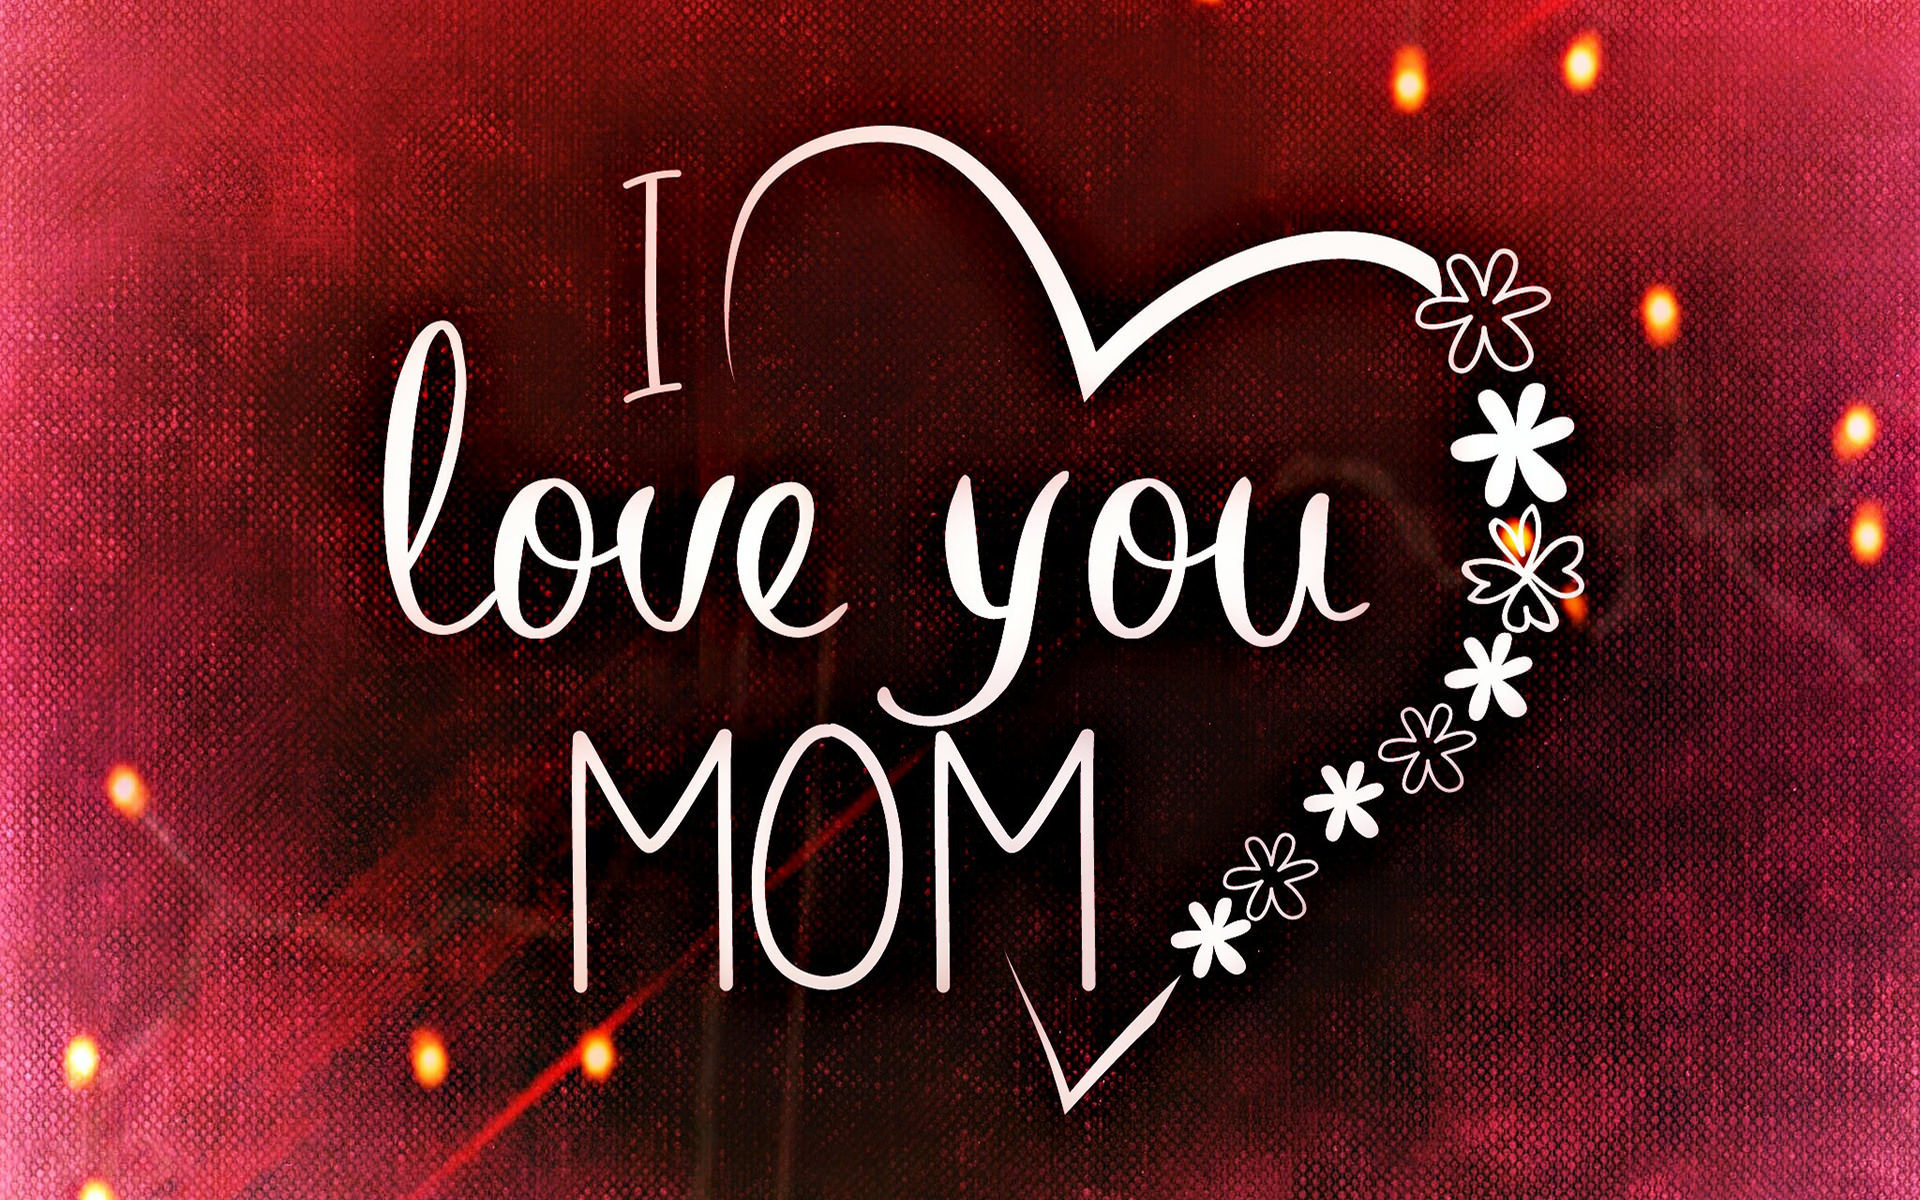 50 Best I Love You Images Collection For Whatsapp: I Love You Mom Wallpaper (61+ Images